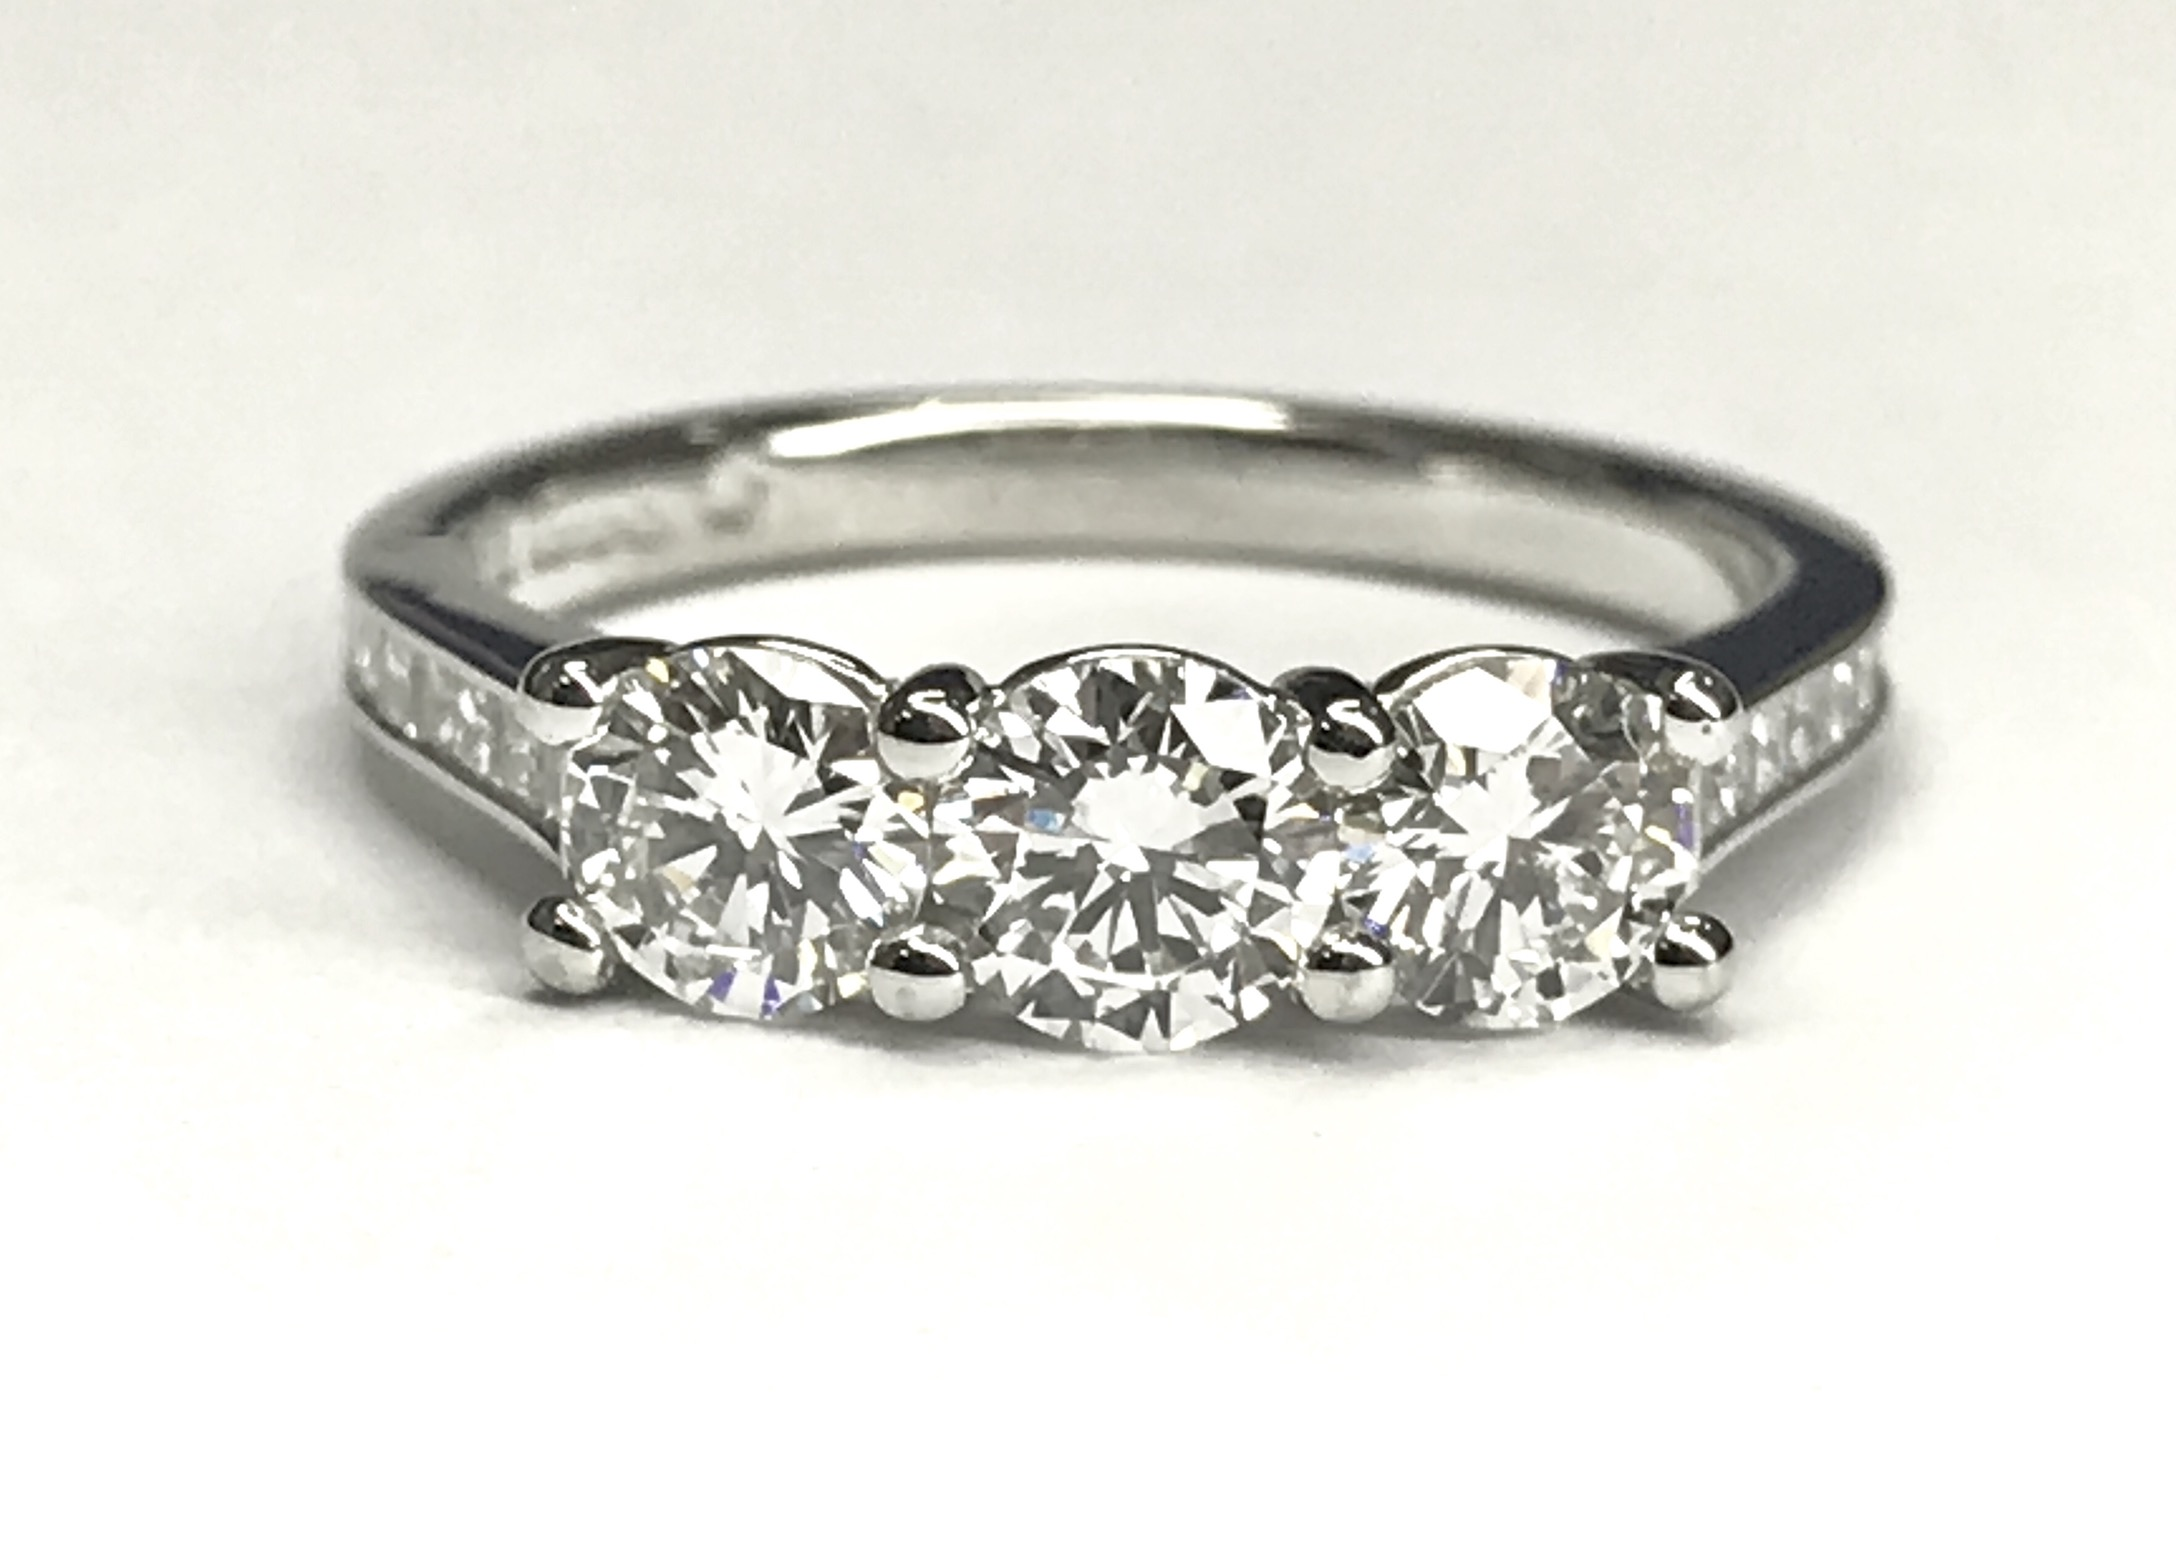 Copy of  Modern 3 stone diamond ring with channel set diamond shoulders. Made in Chichester, England.